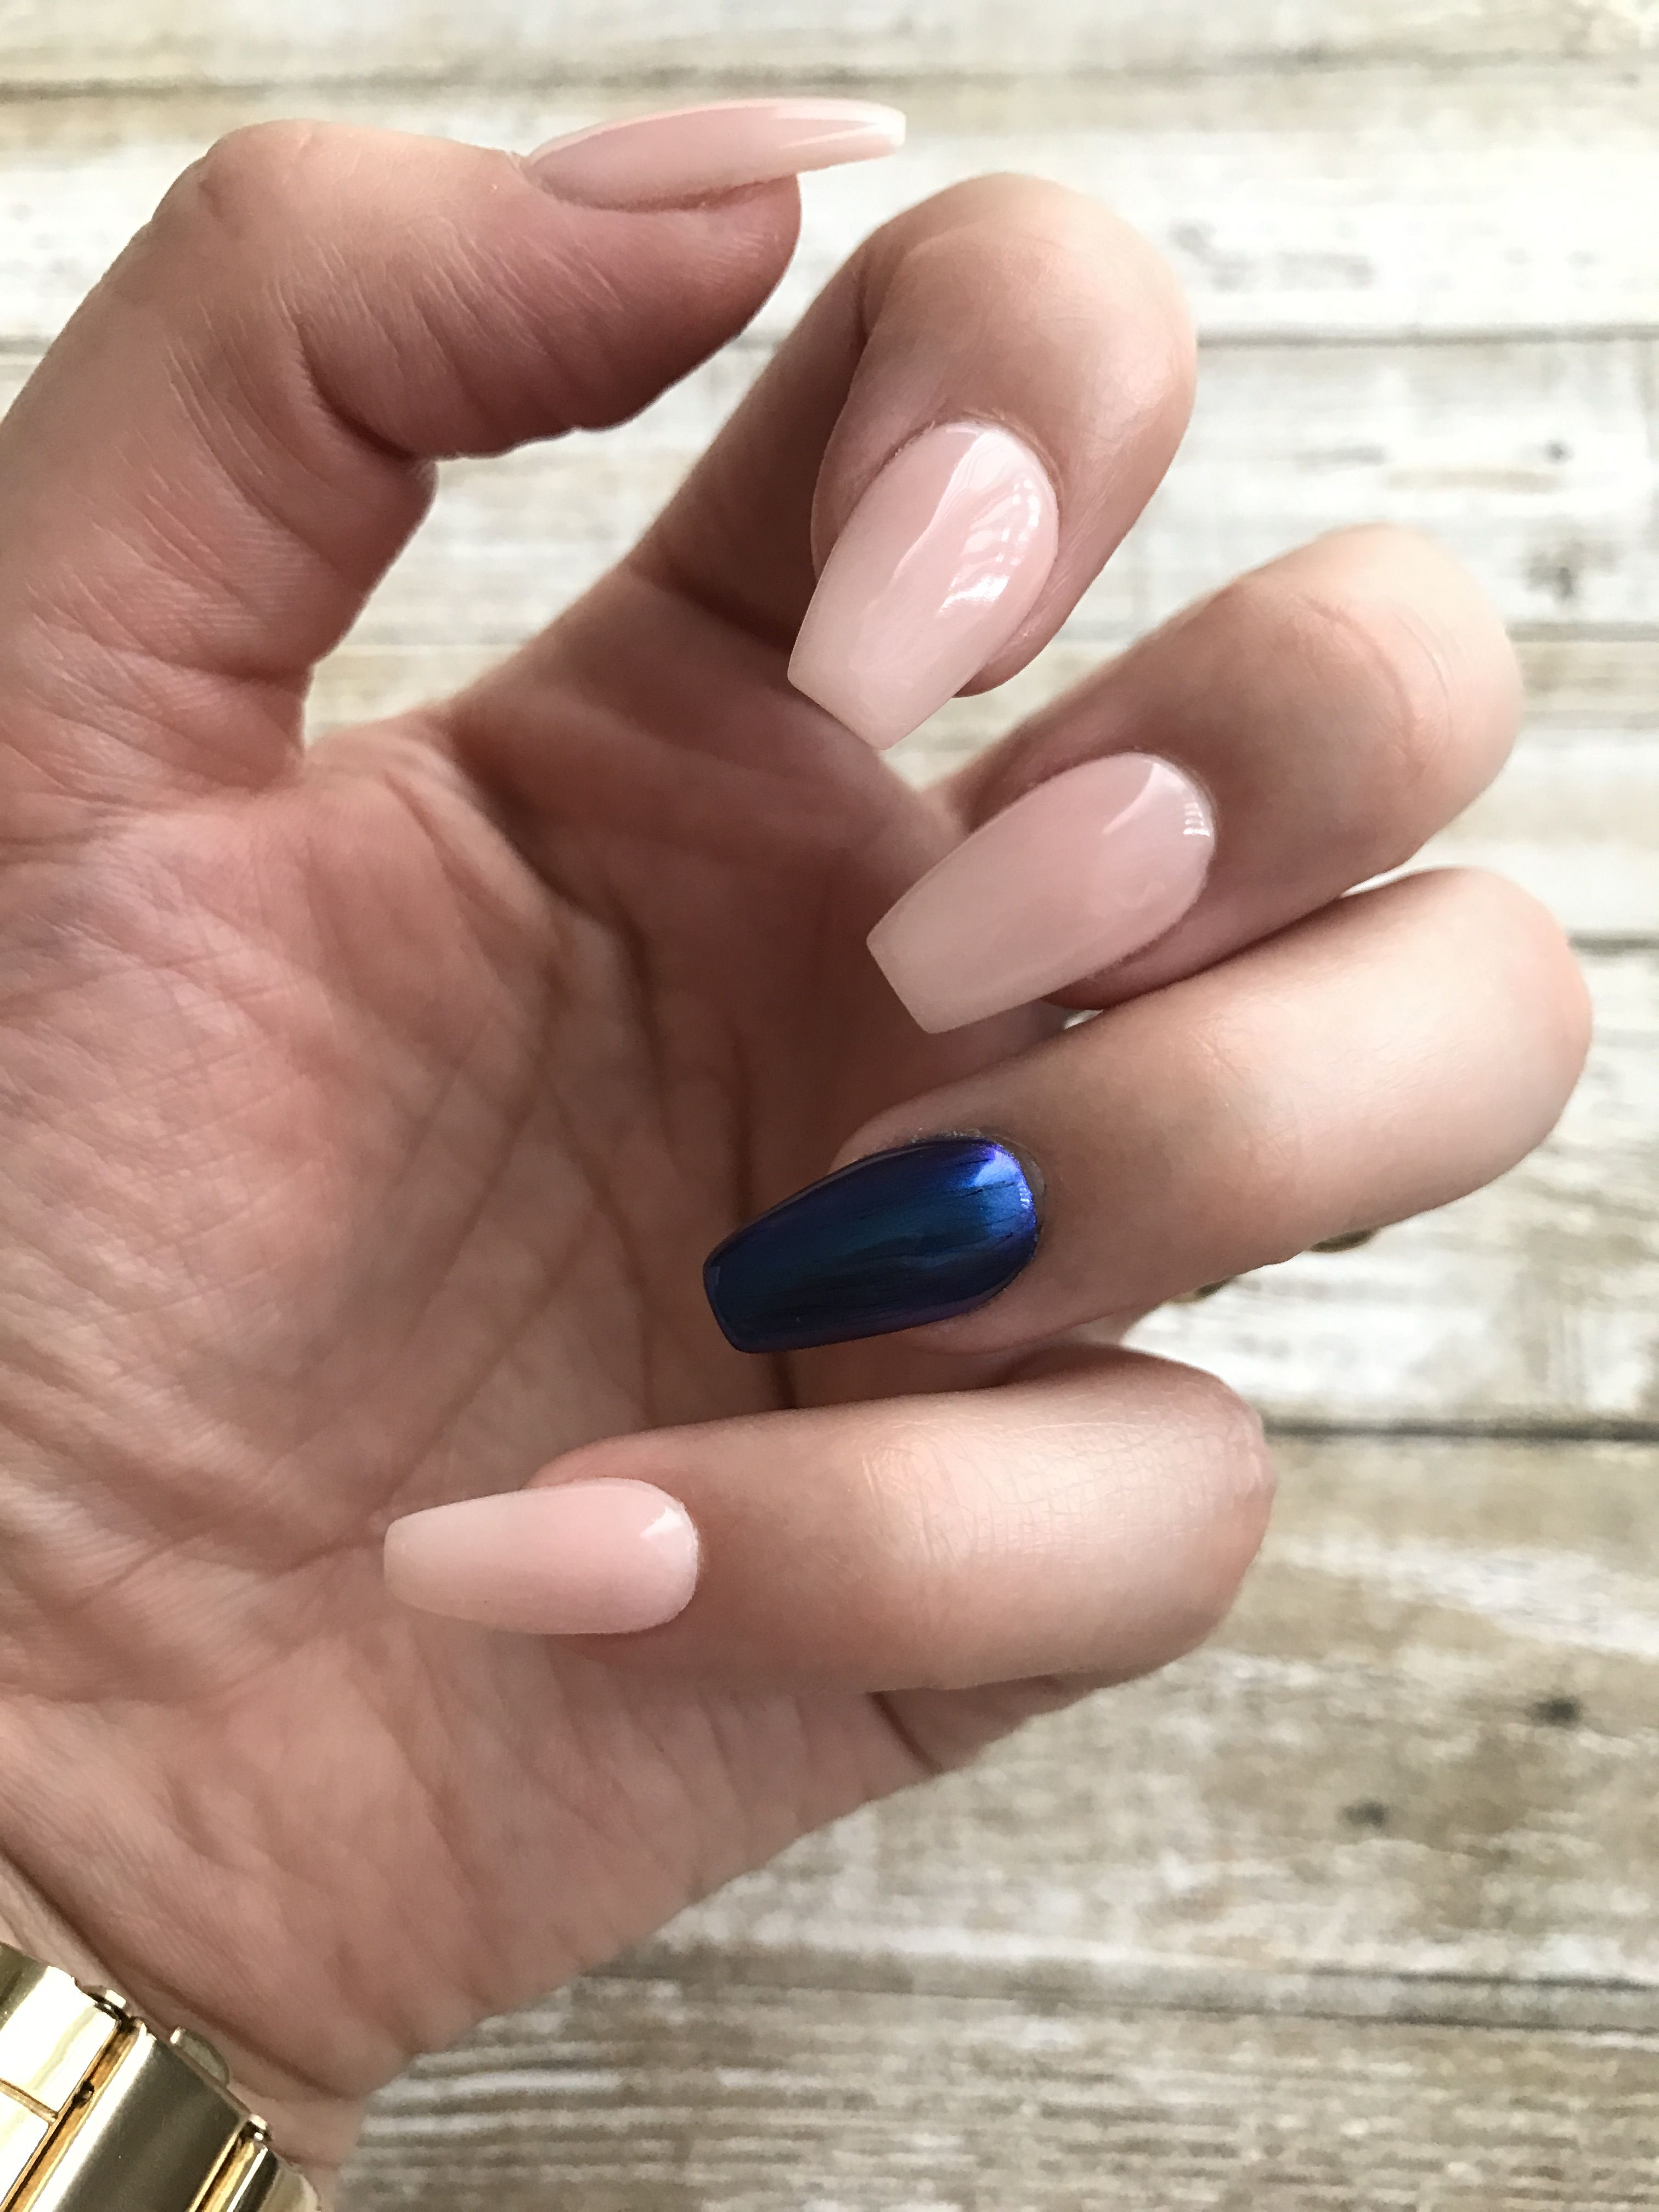 The odd man out. Tipsy nail salon Houston | Nails!!! | Pinterest ...